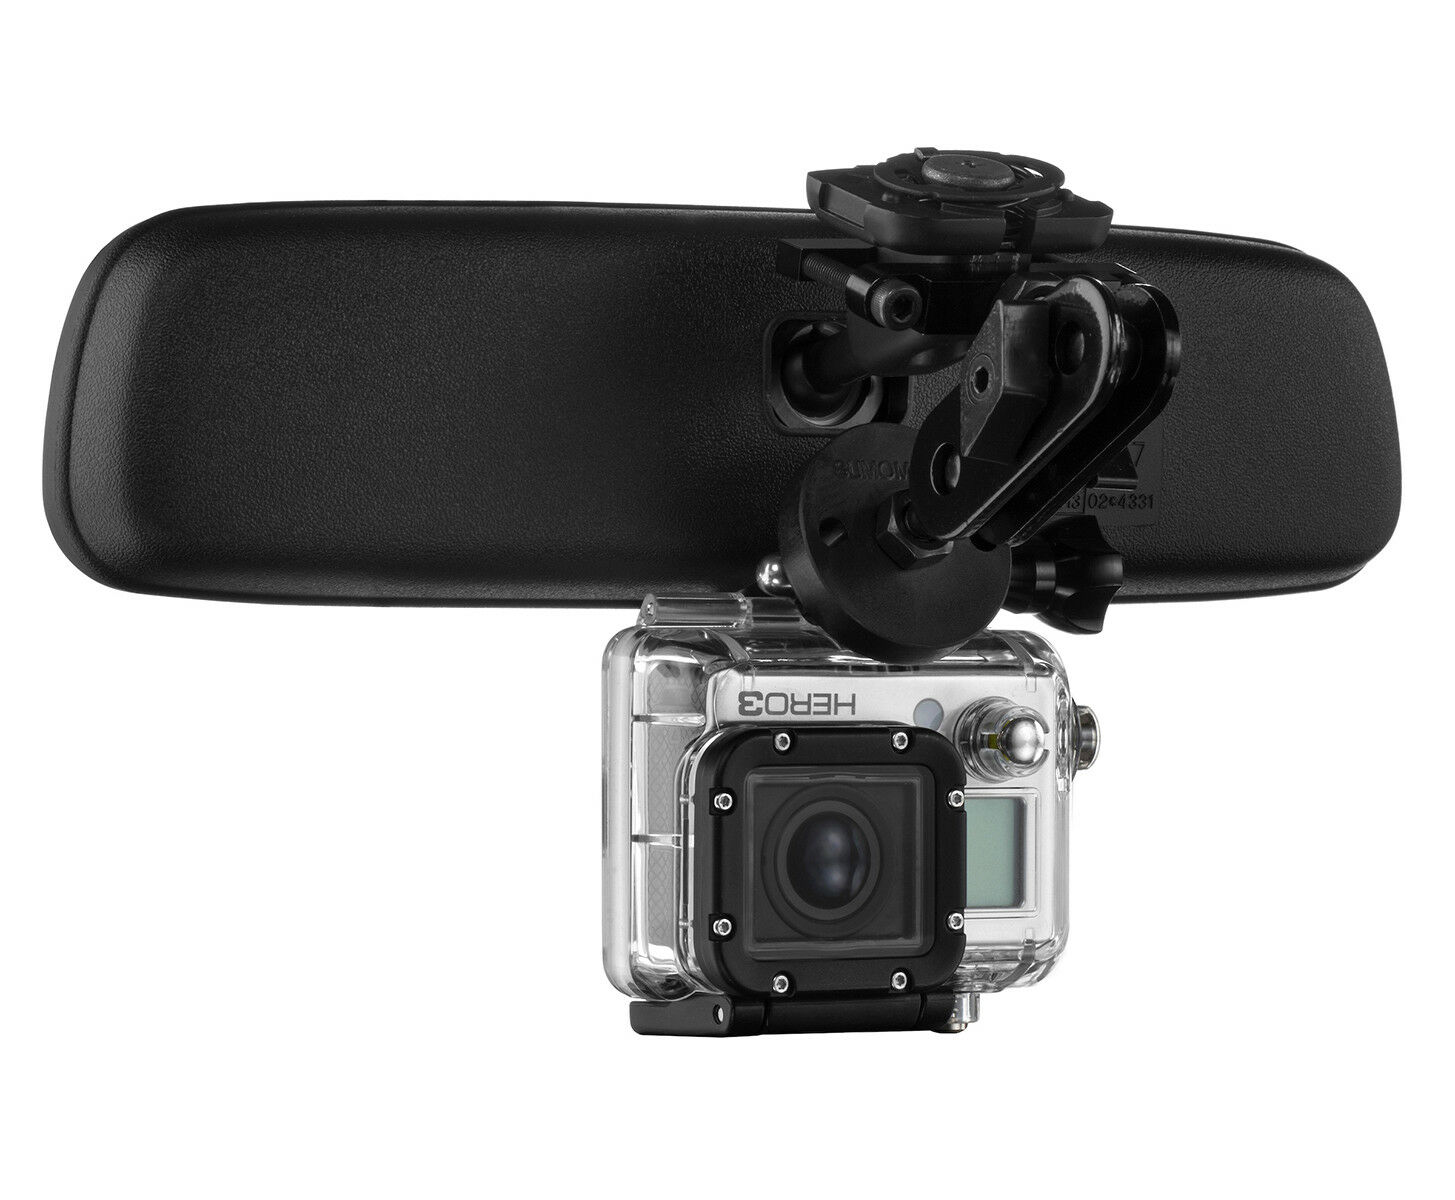 Mirror Mount Action Cam Bracket for GoPro Hero and Compatible Featured